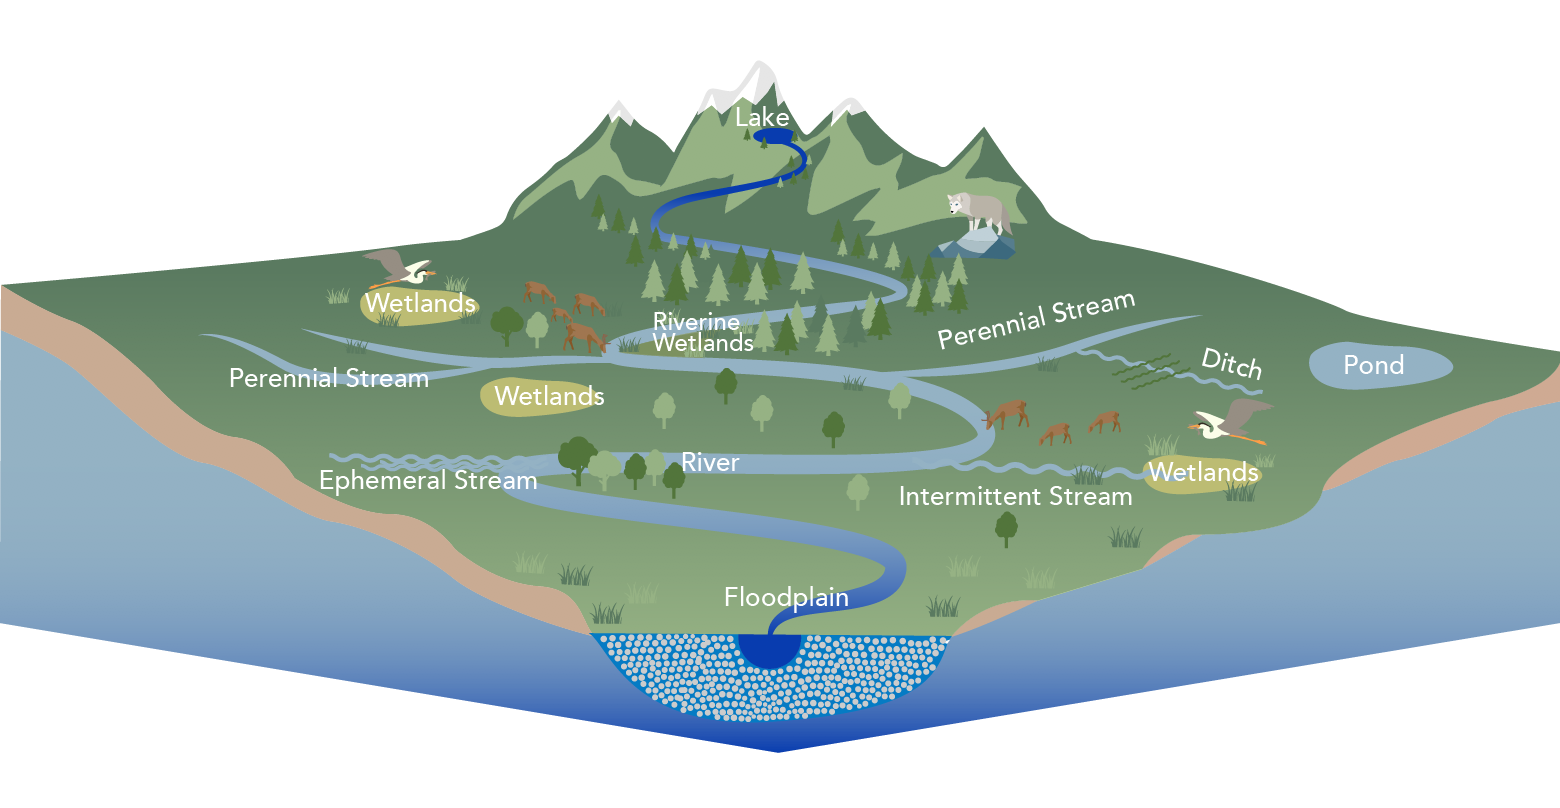 An illustration shows a map of water systems from a lake at the top of a hill to a floodplain in a basin.